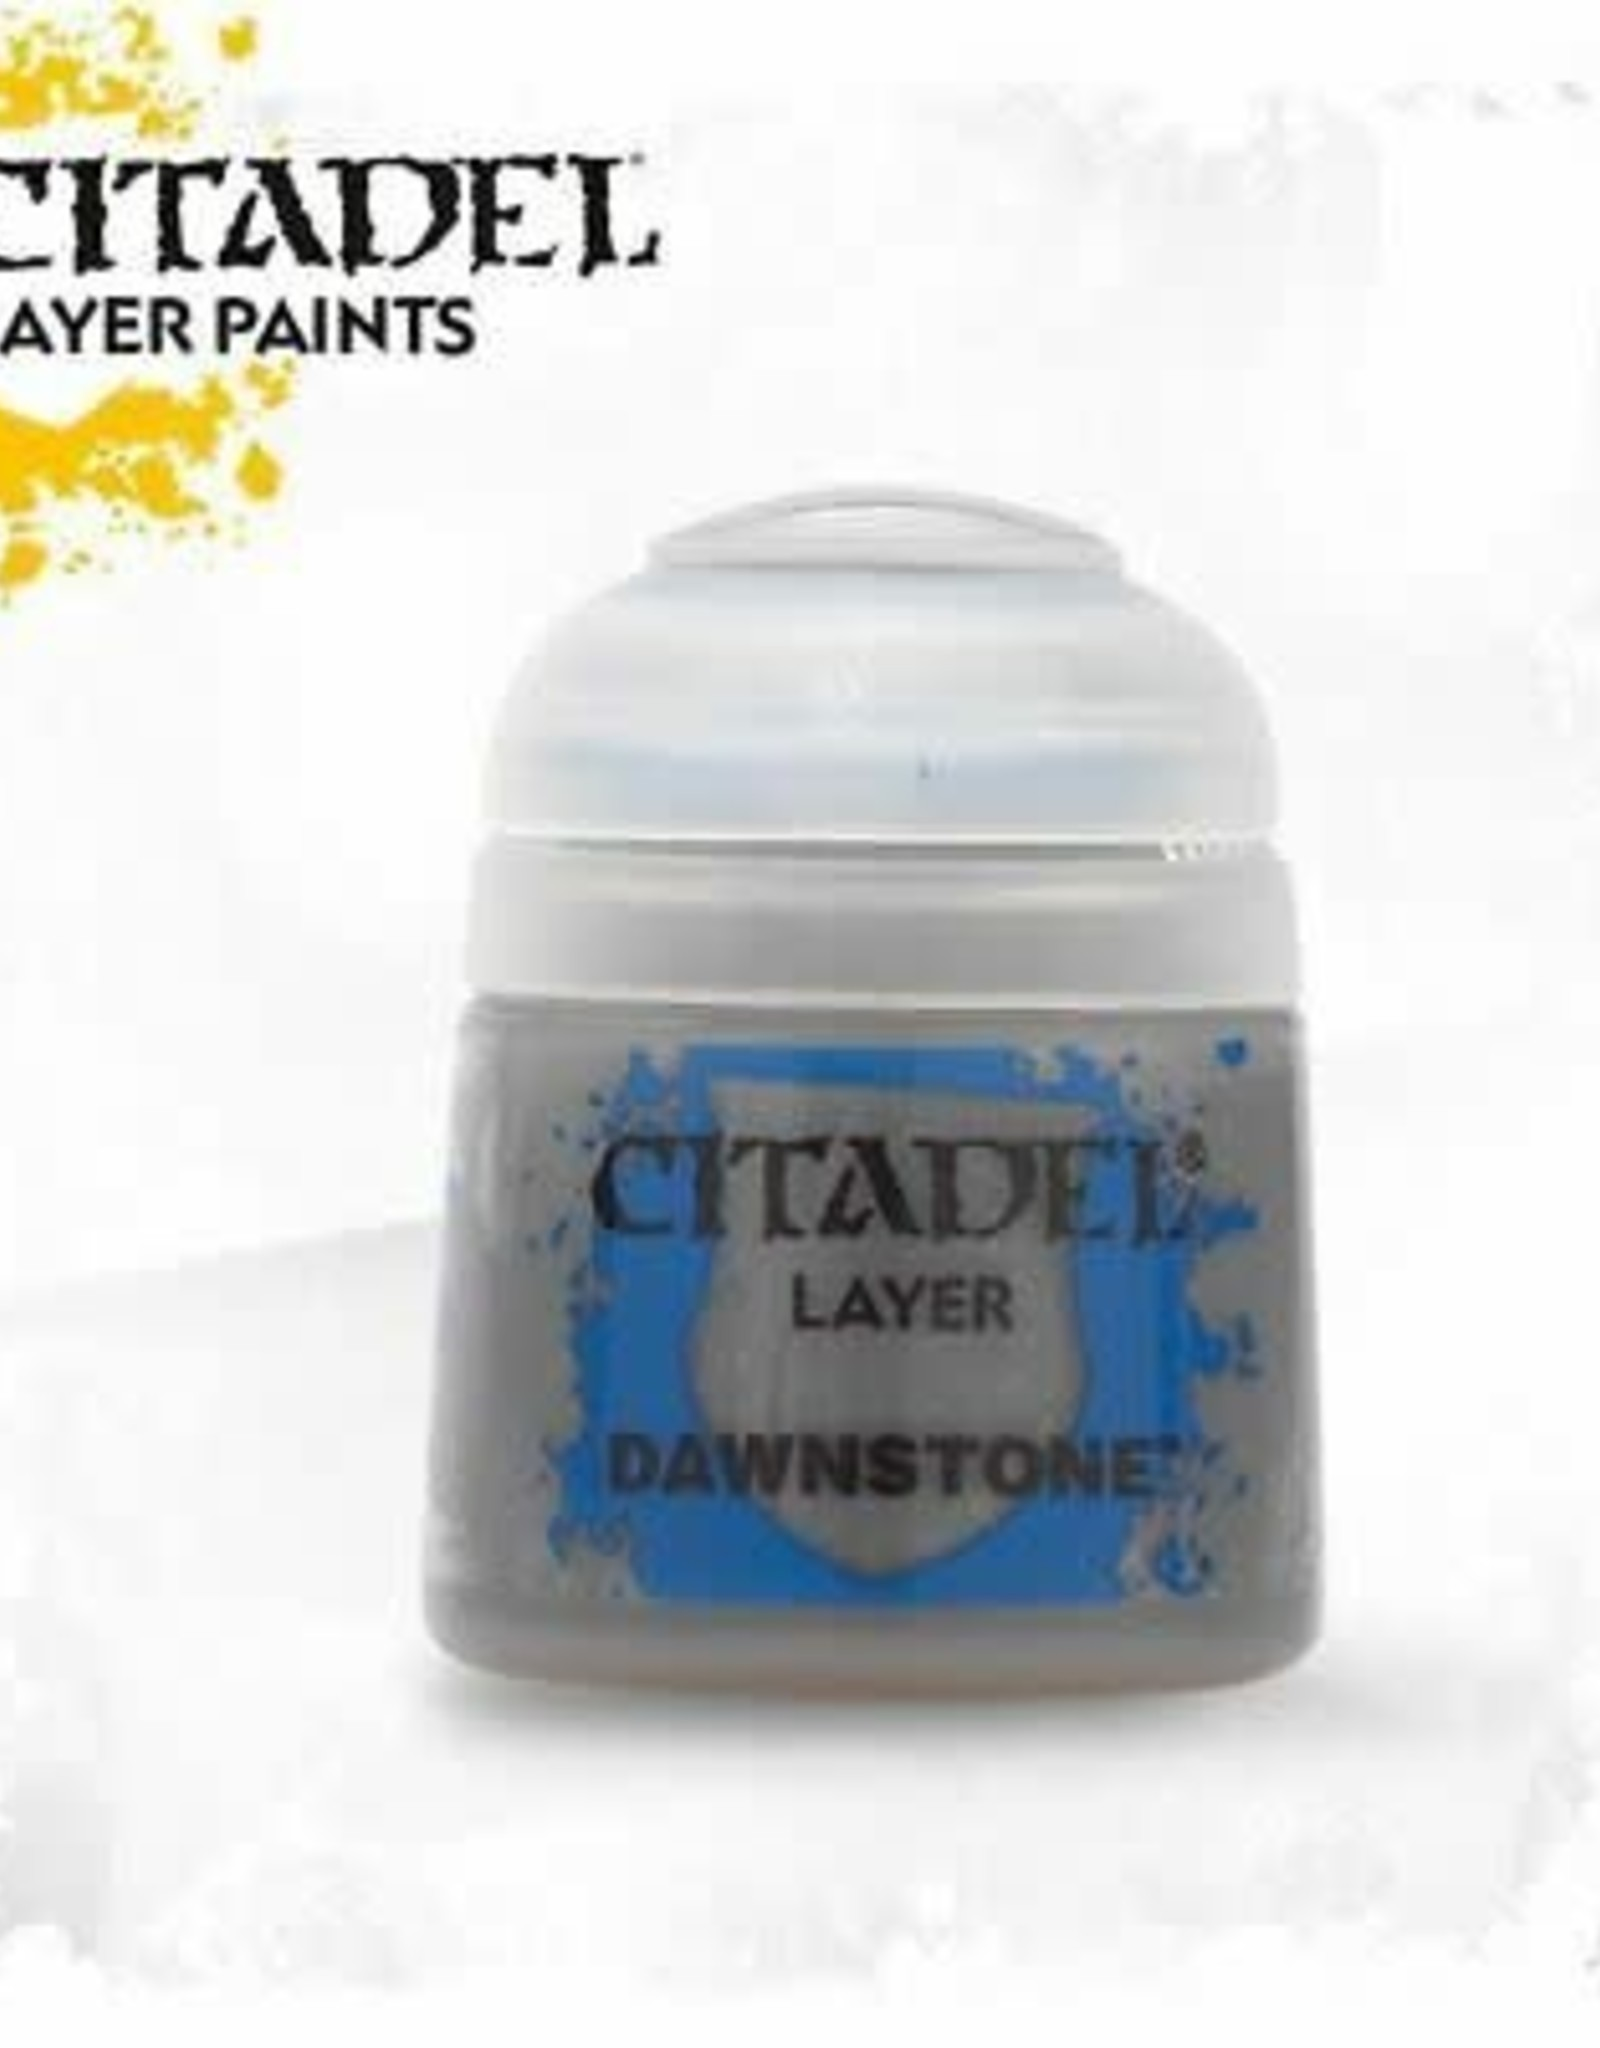 Games Workshop Citadel Paint: Layer - Dawnstone